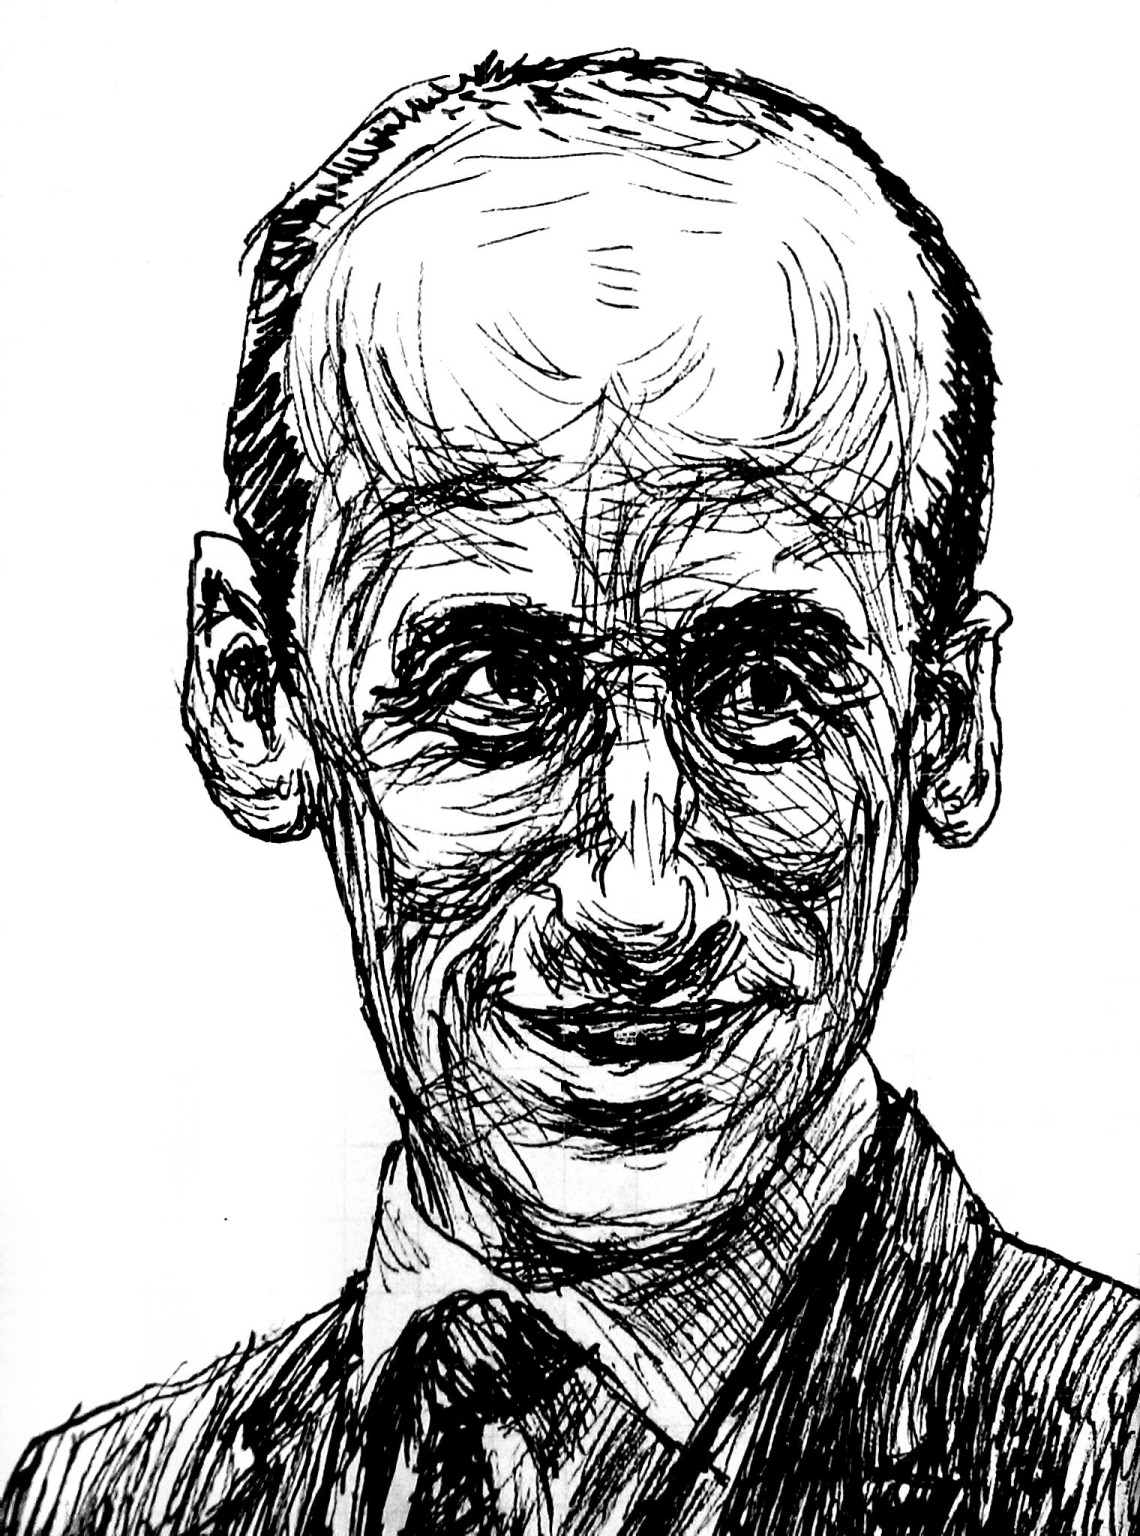 Stephen Miller illustration